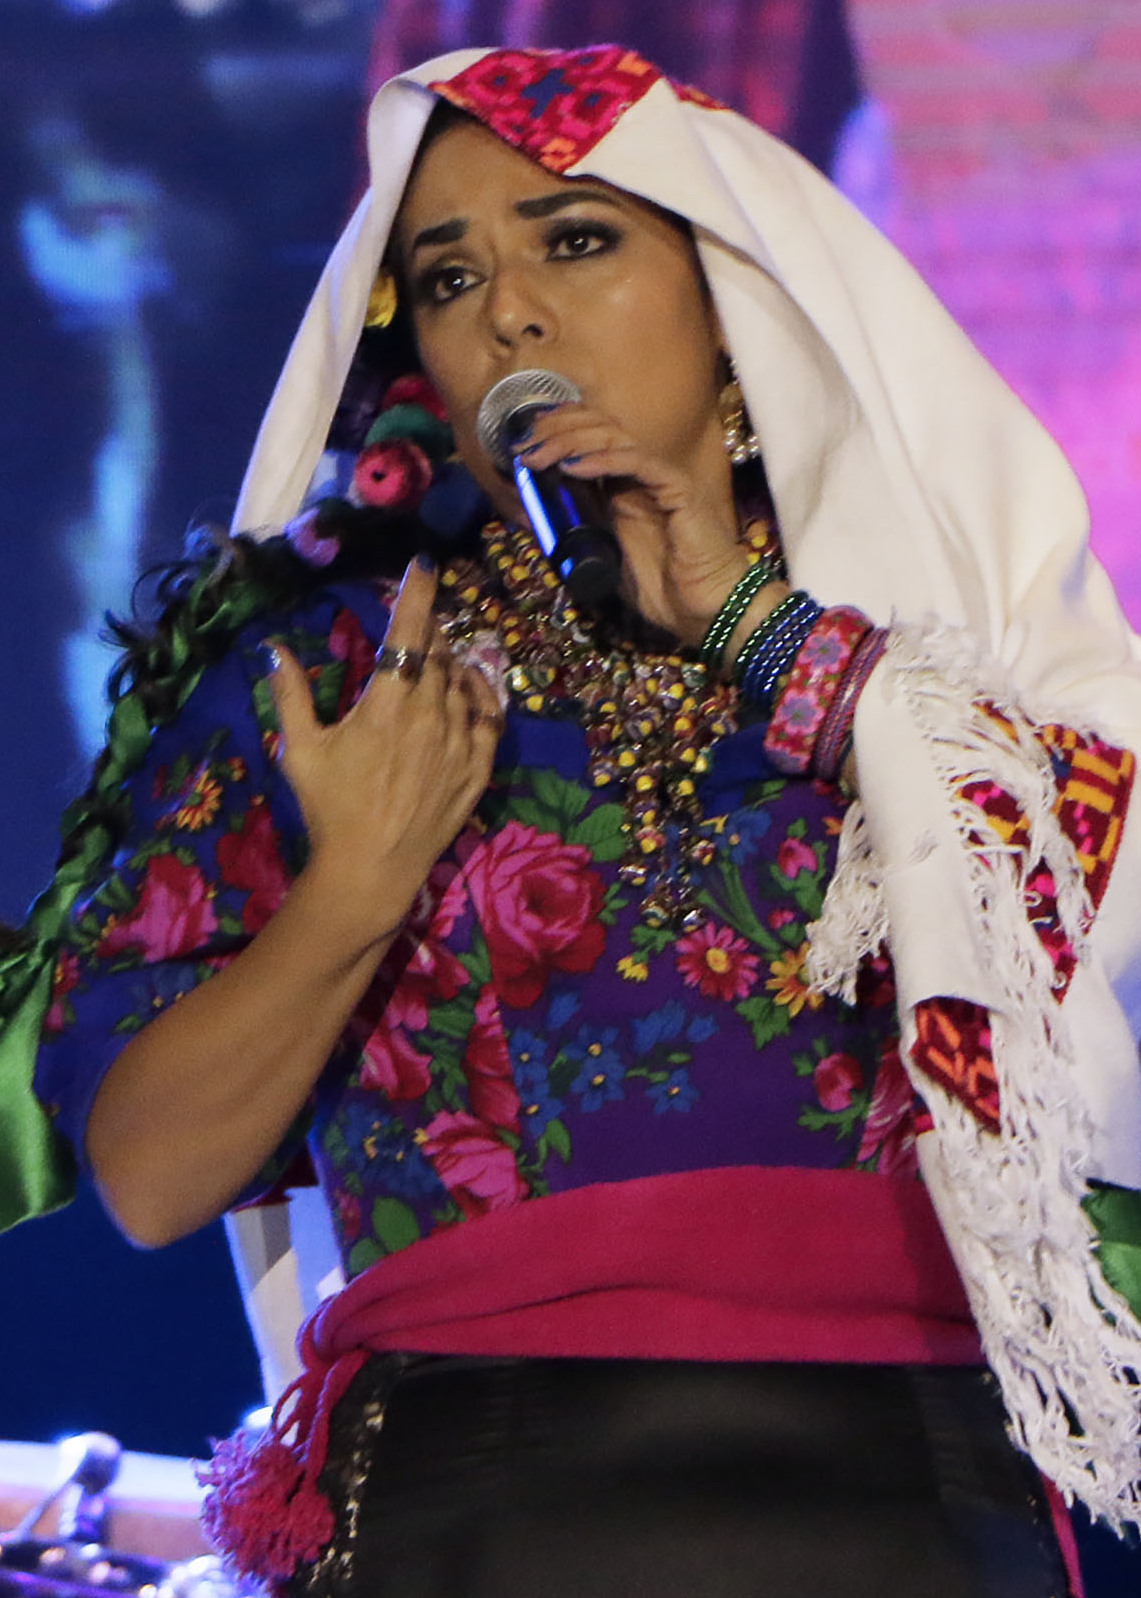 Downs performing in Mexico (2018)